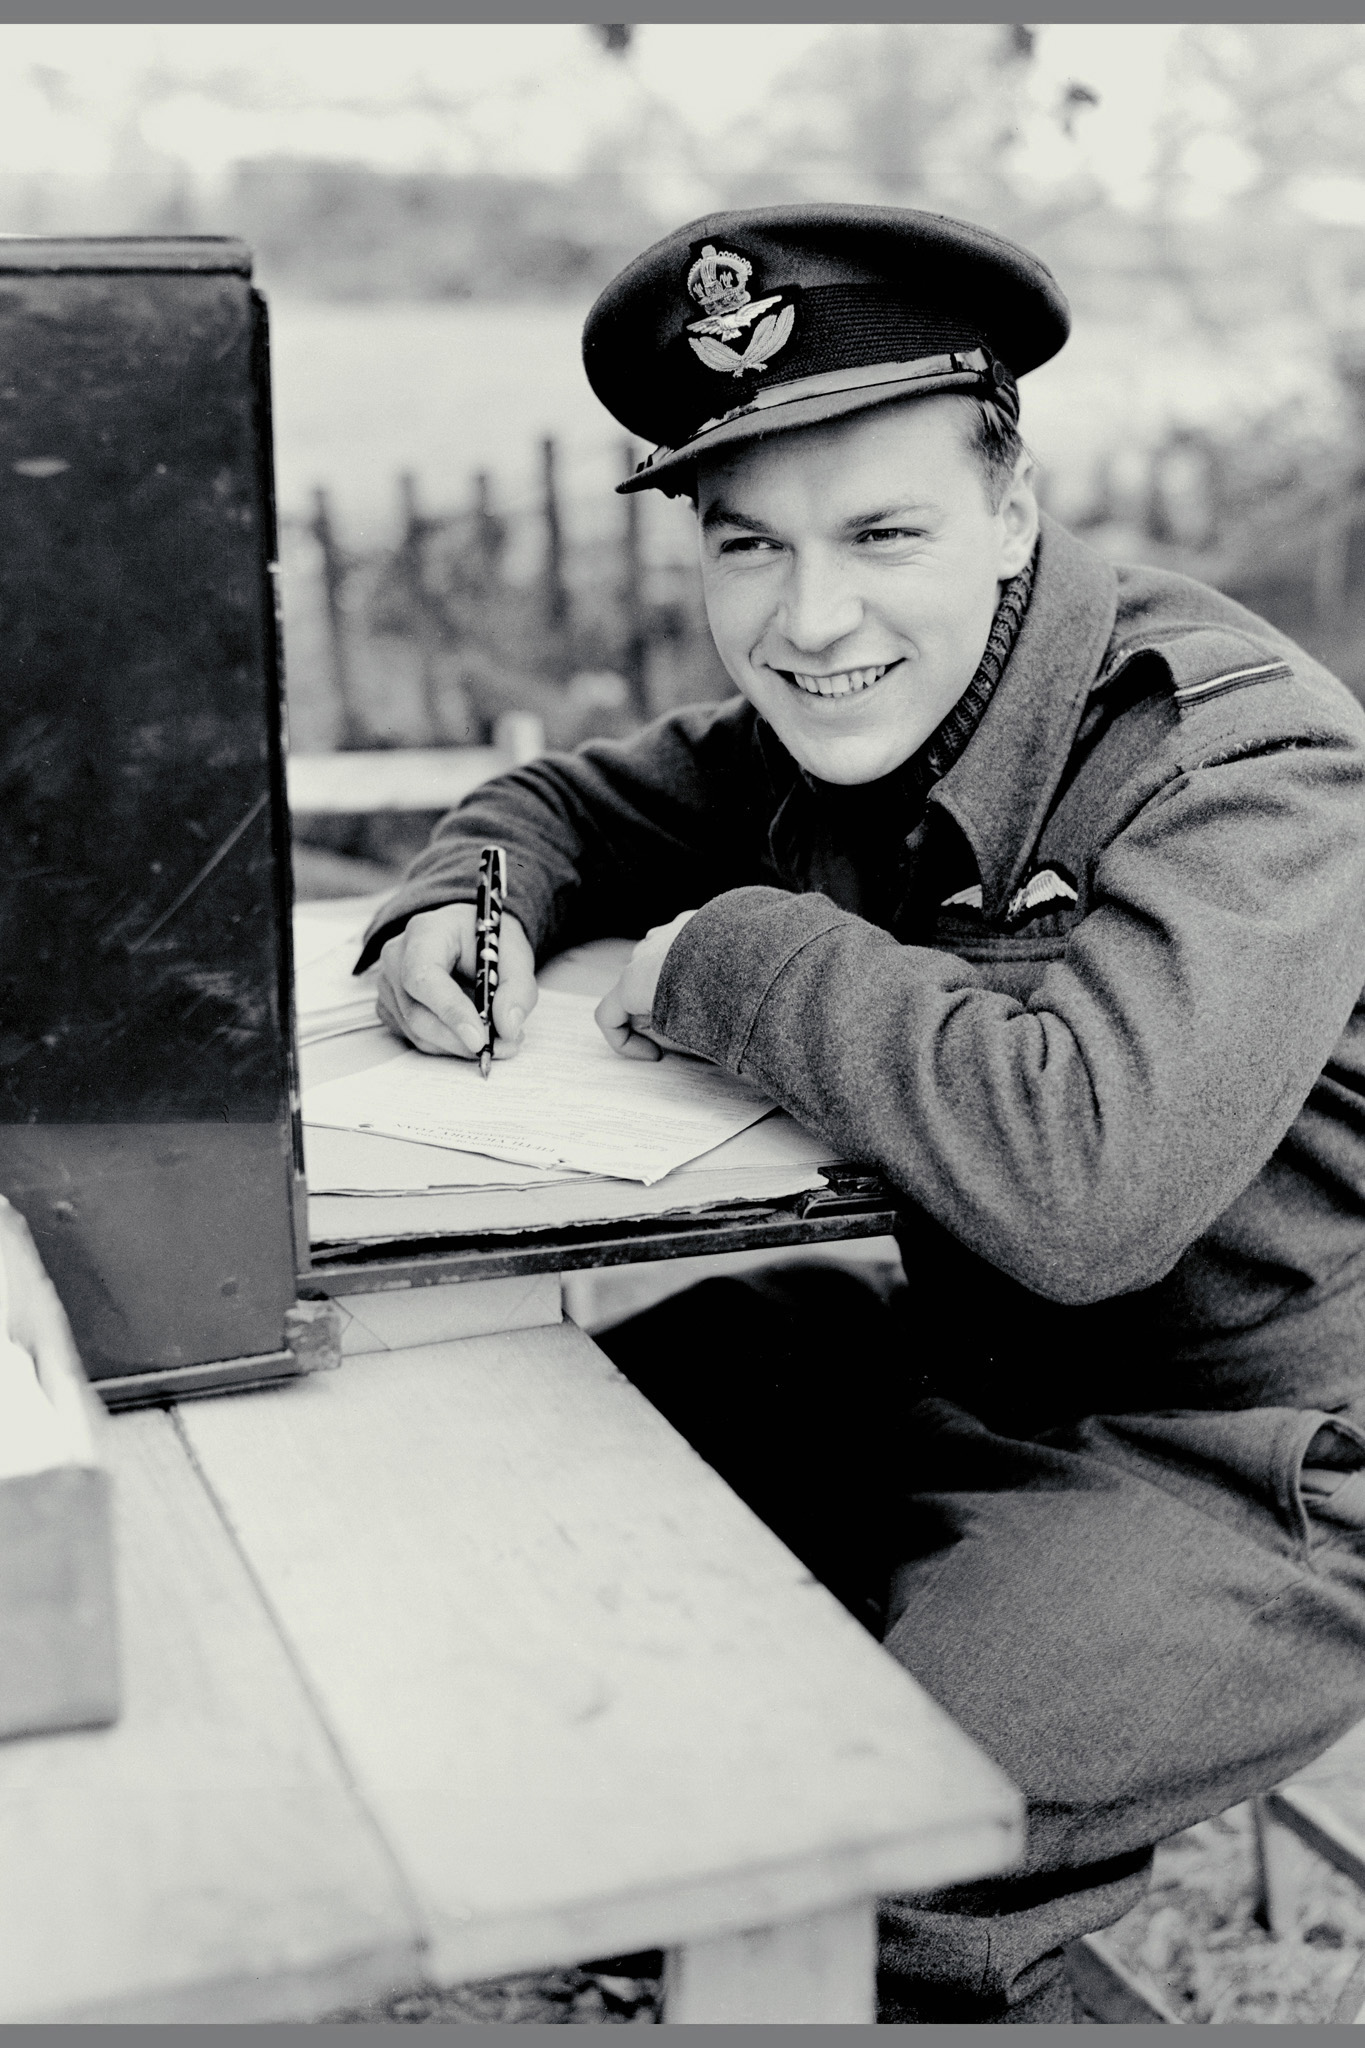 Flying Officer Robert Middlemiss subscribes to Canada's victory loan campaign in October, 1943, at an advanced Canadian airfield in England where fighter pilots spent the summer and autumn of 1943 in tents. He was on his second tour of operations when this photo was taken; his first was in Malta where he was shot down. Flying Officer Middlemiss retired from the RCAF in the rank of wing commander (lieutenant-colonel) in 1969 and became honorary colonel of 427 Special Operations Aviation Squadron in 2003. PHOTO: DND